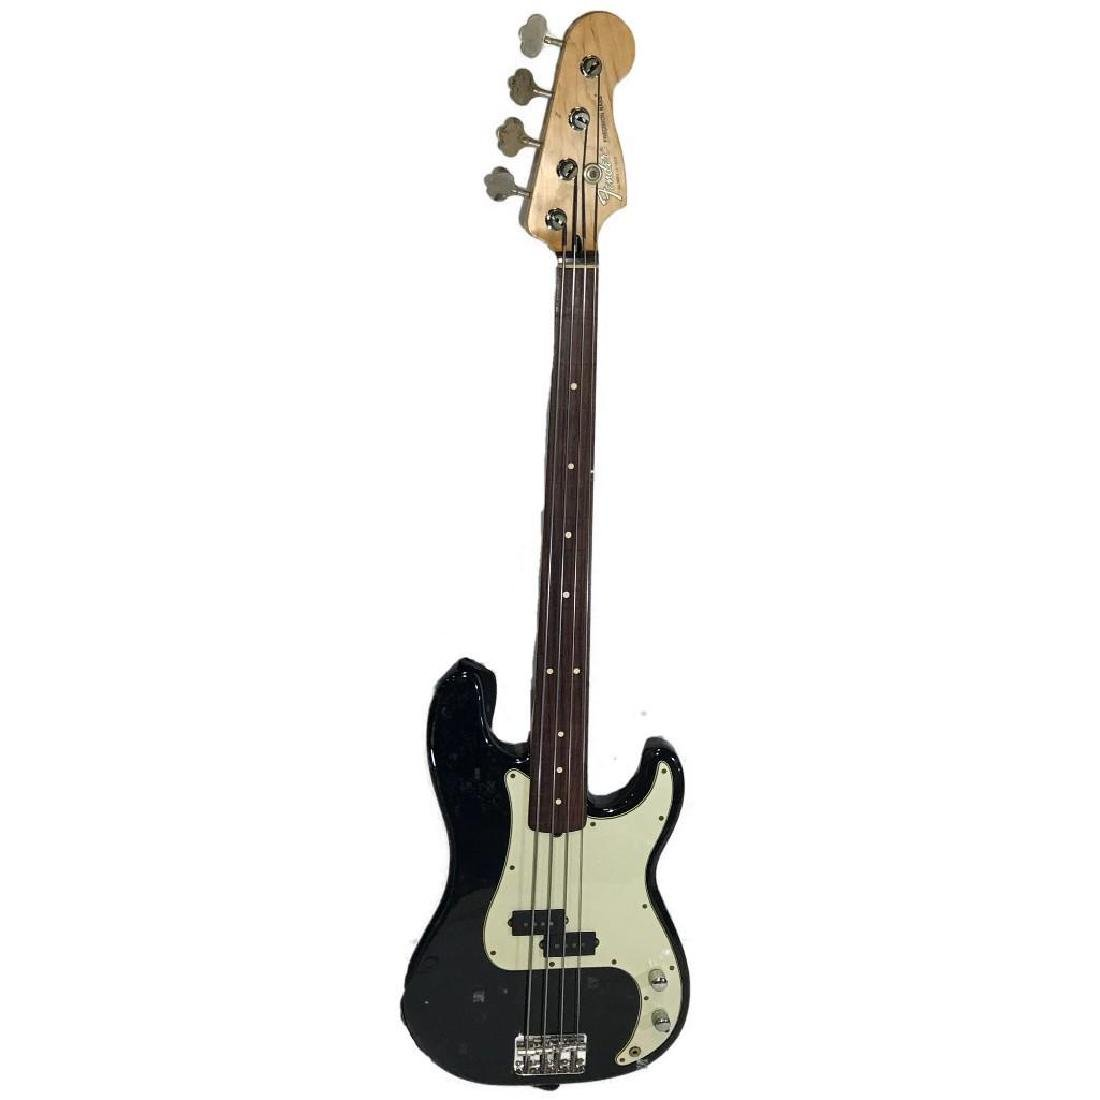 Fender Precision Bass With Hard Case